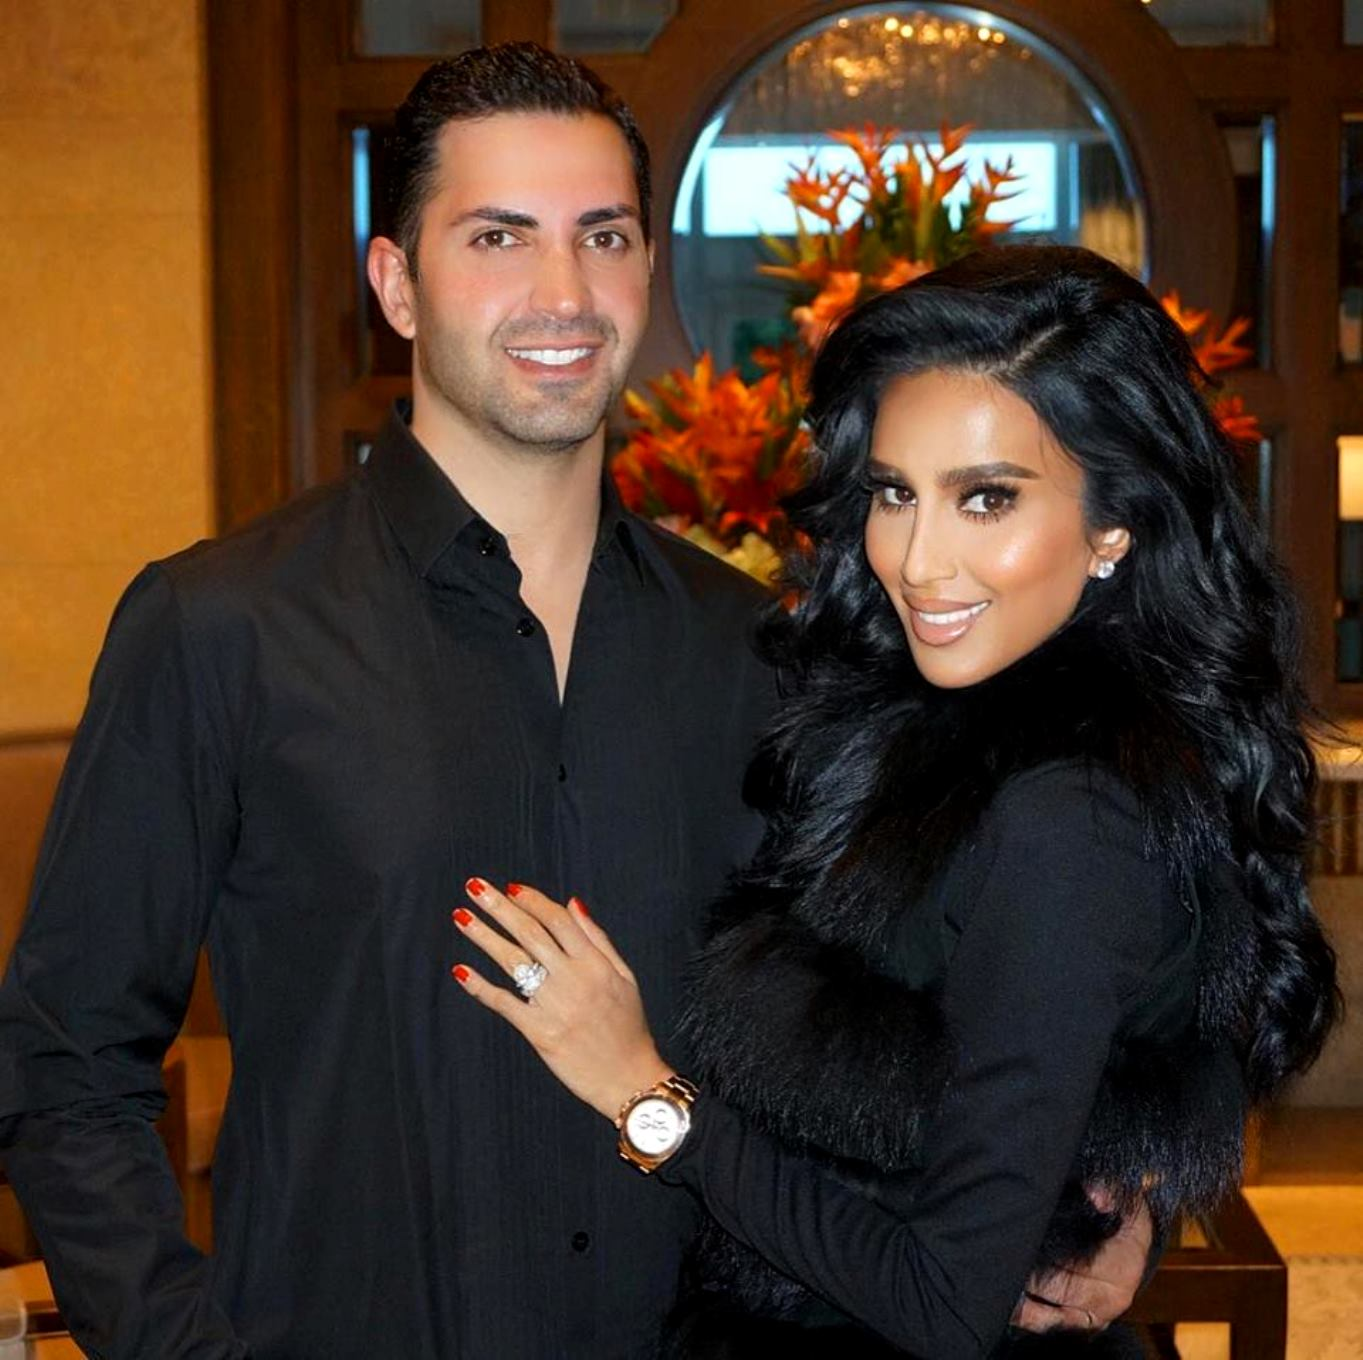 Shahs of Sunset's Lilly Ghalichi Talks Split From Husband Dara Mir After Divorce Filing, Plus See Photos From the Ultra-Glam Party for Her One-Year Old Daughter